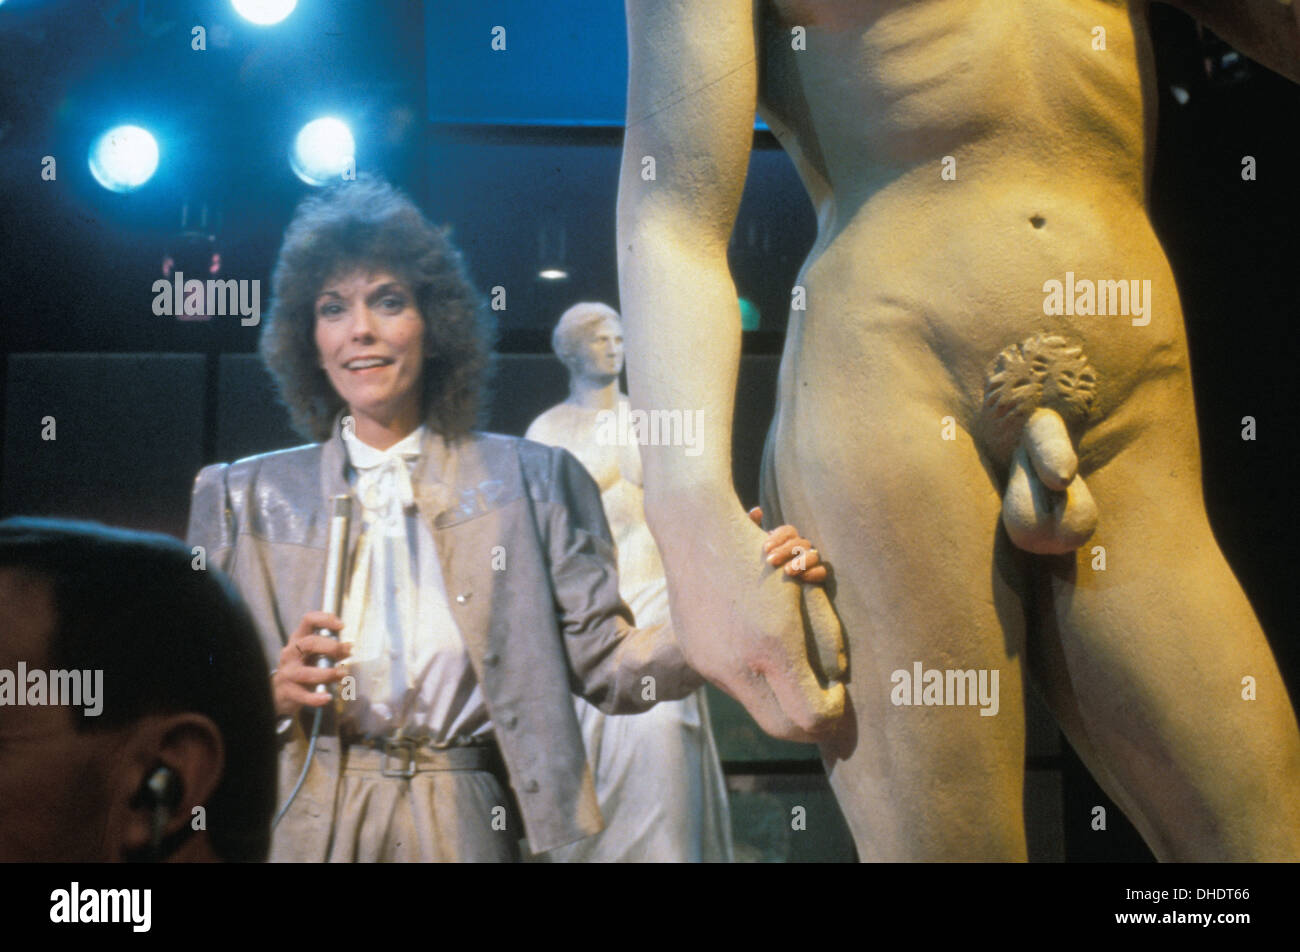 Grammy Awards 25th Anniversary Karen Carpenter Last Photo